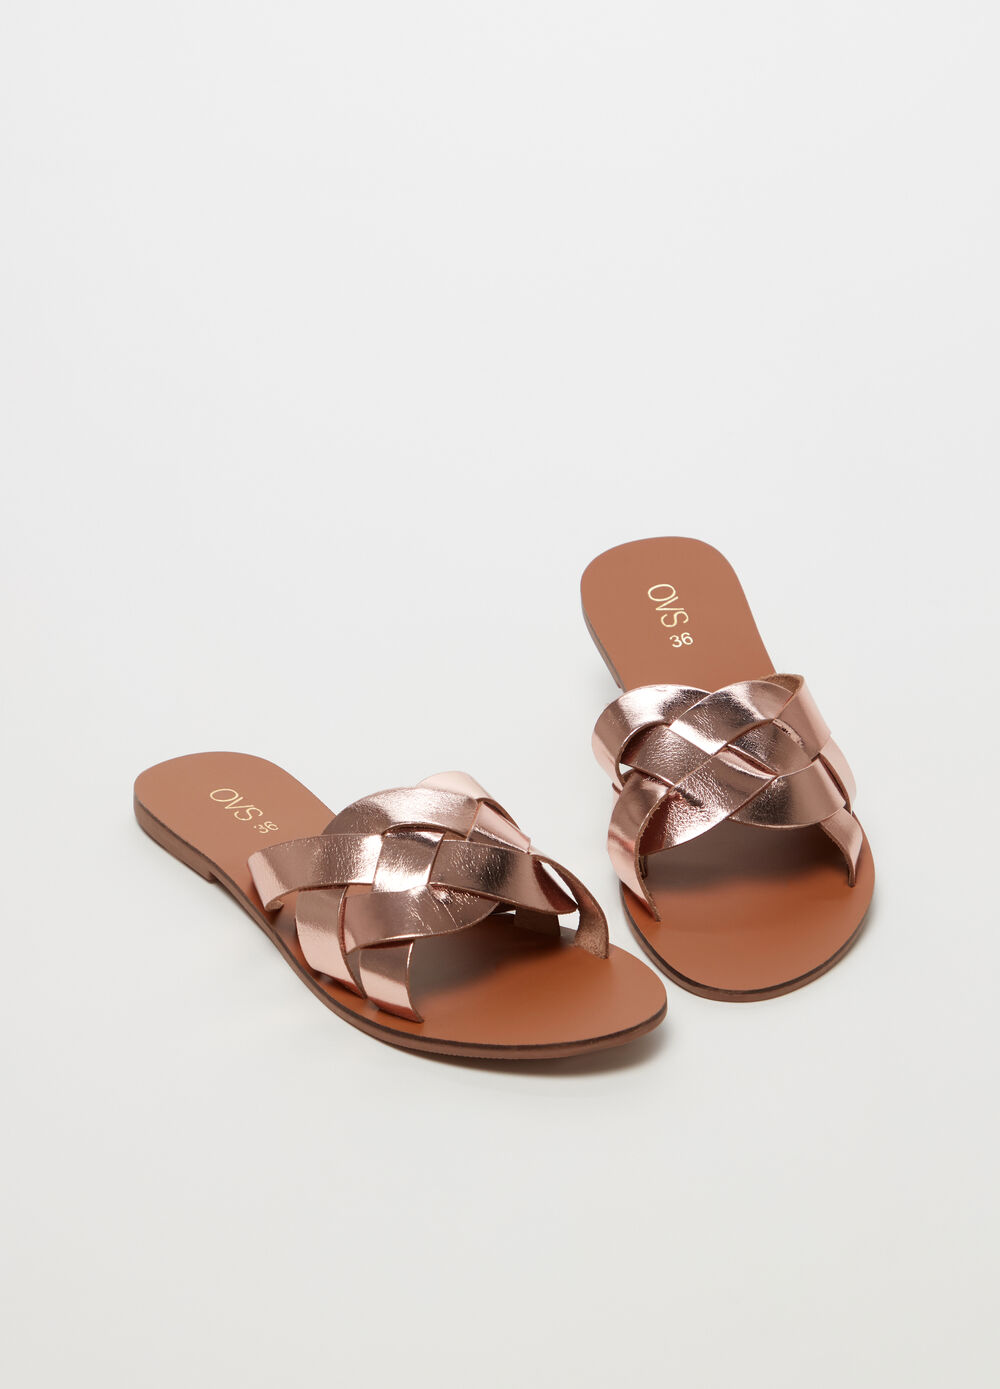 Sandals with shiny braided strap